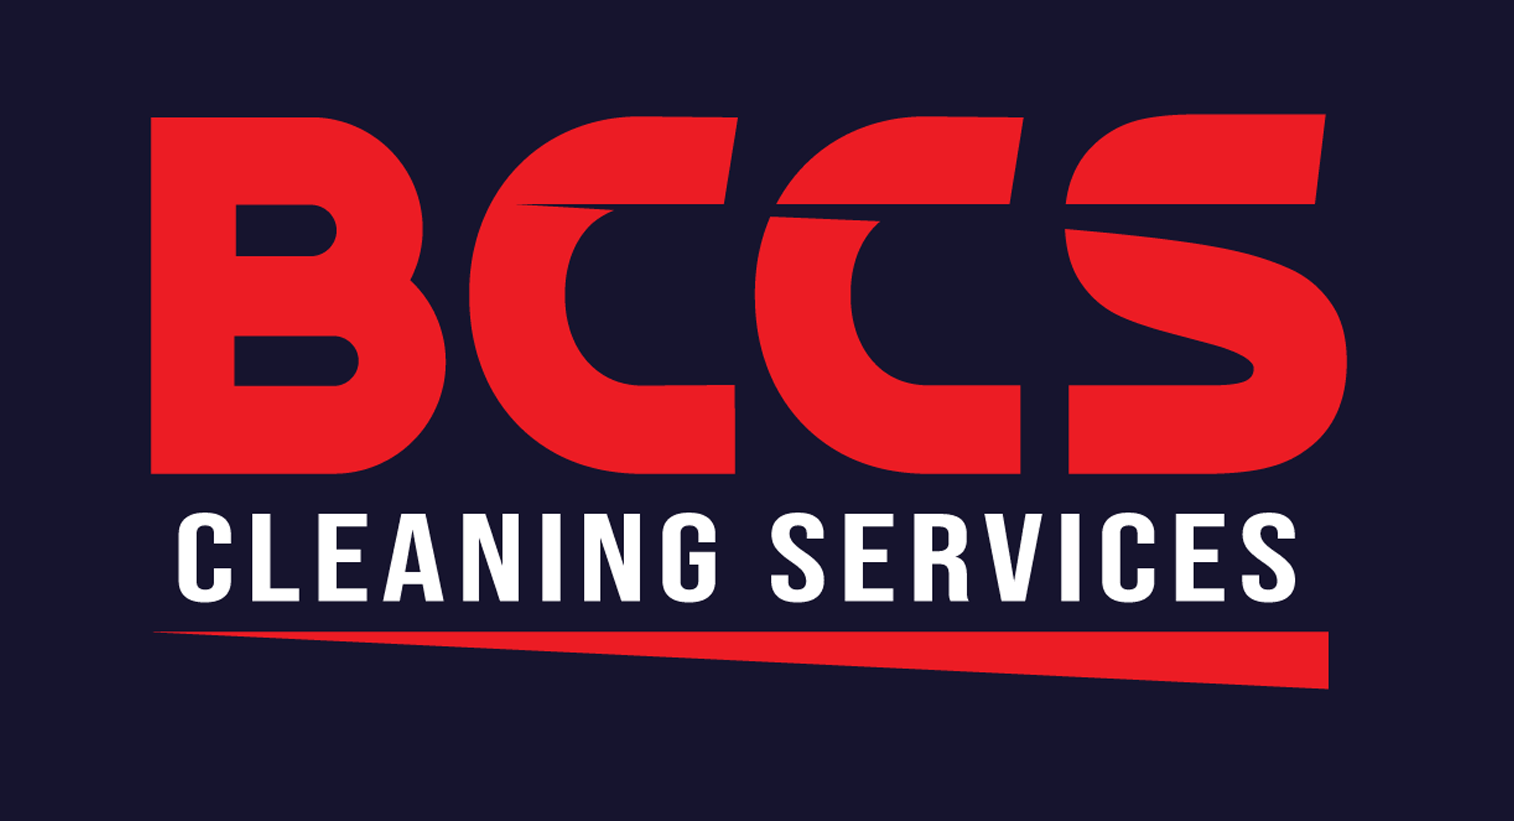 BCCS - Owners Corporation Cleaning Services